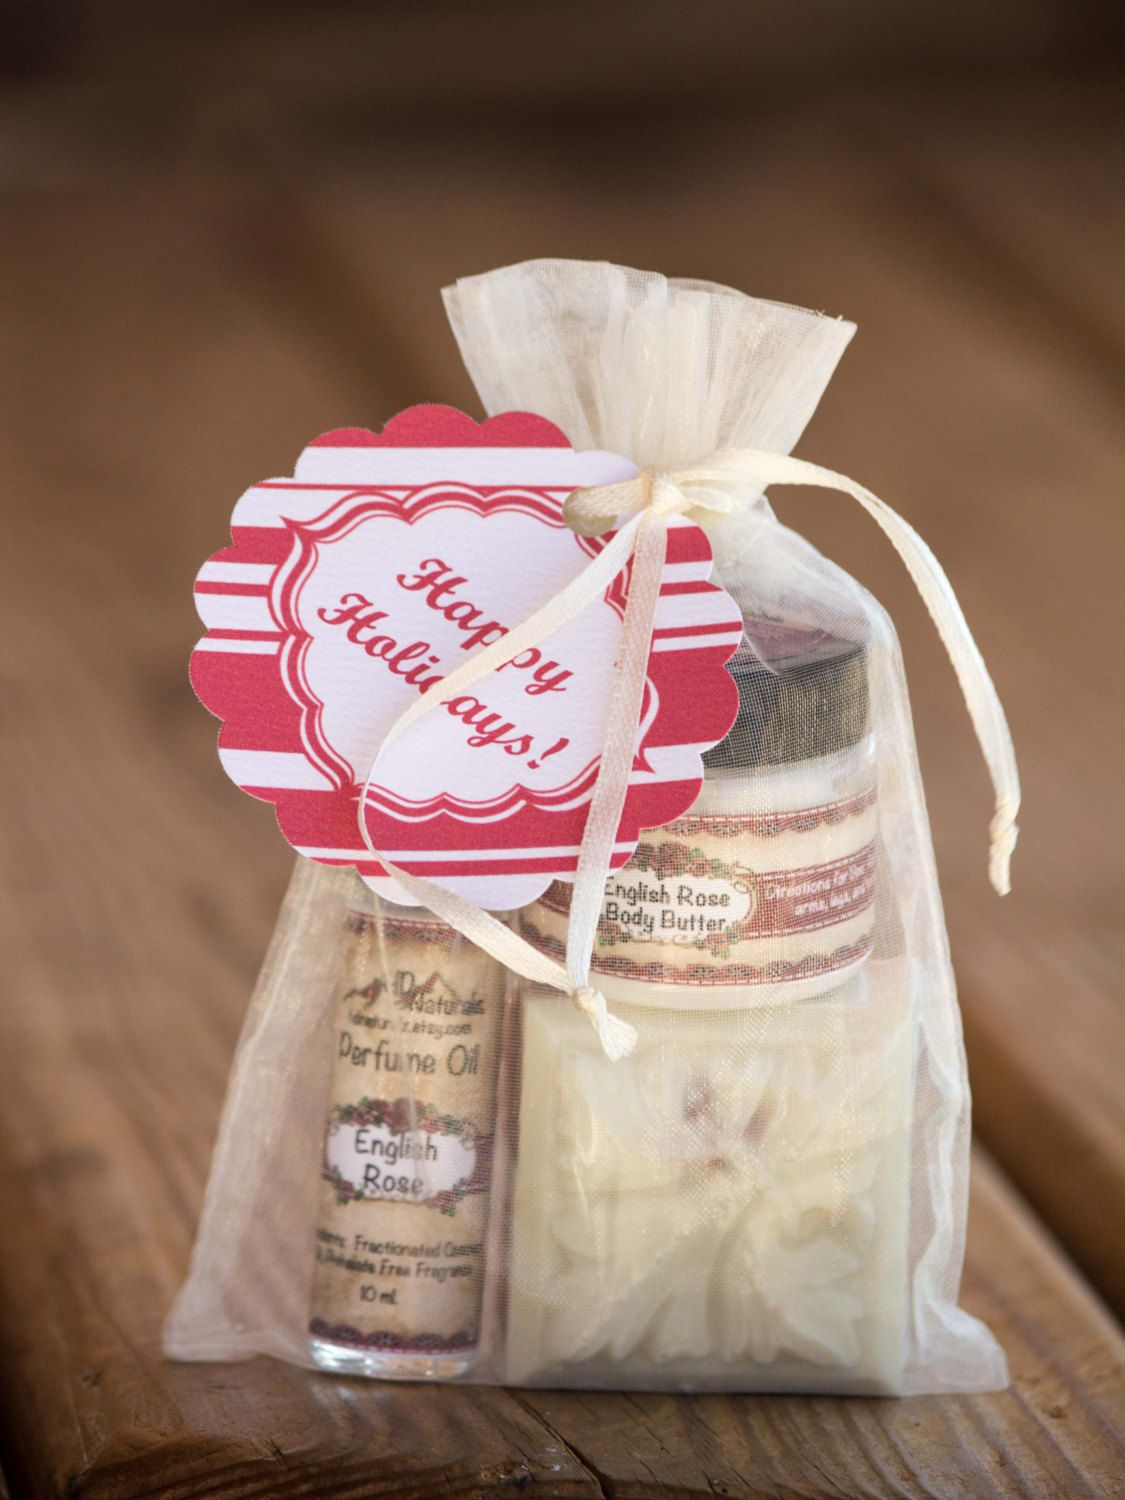 Ideas for Xmas Gifts, Vegan Gift Set, Bath and Body Set, Spa Set ...